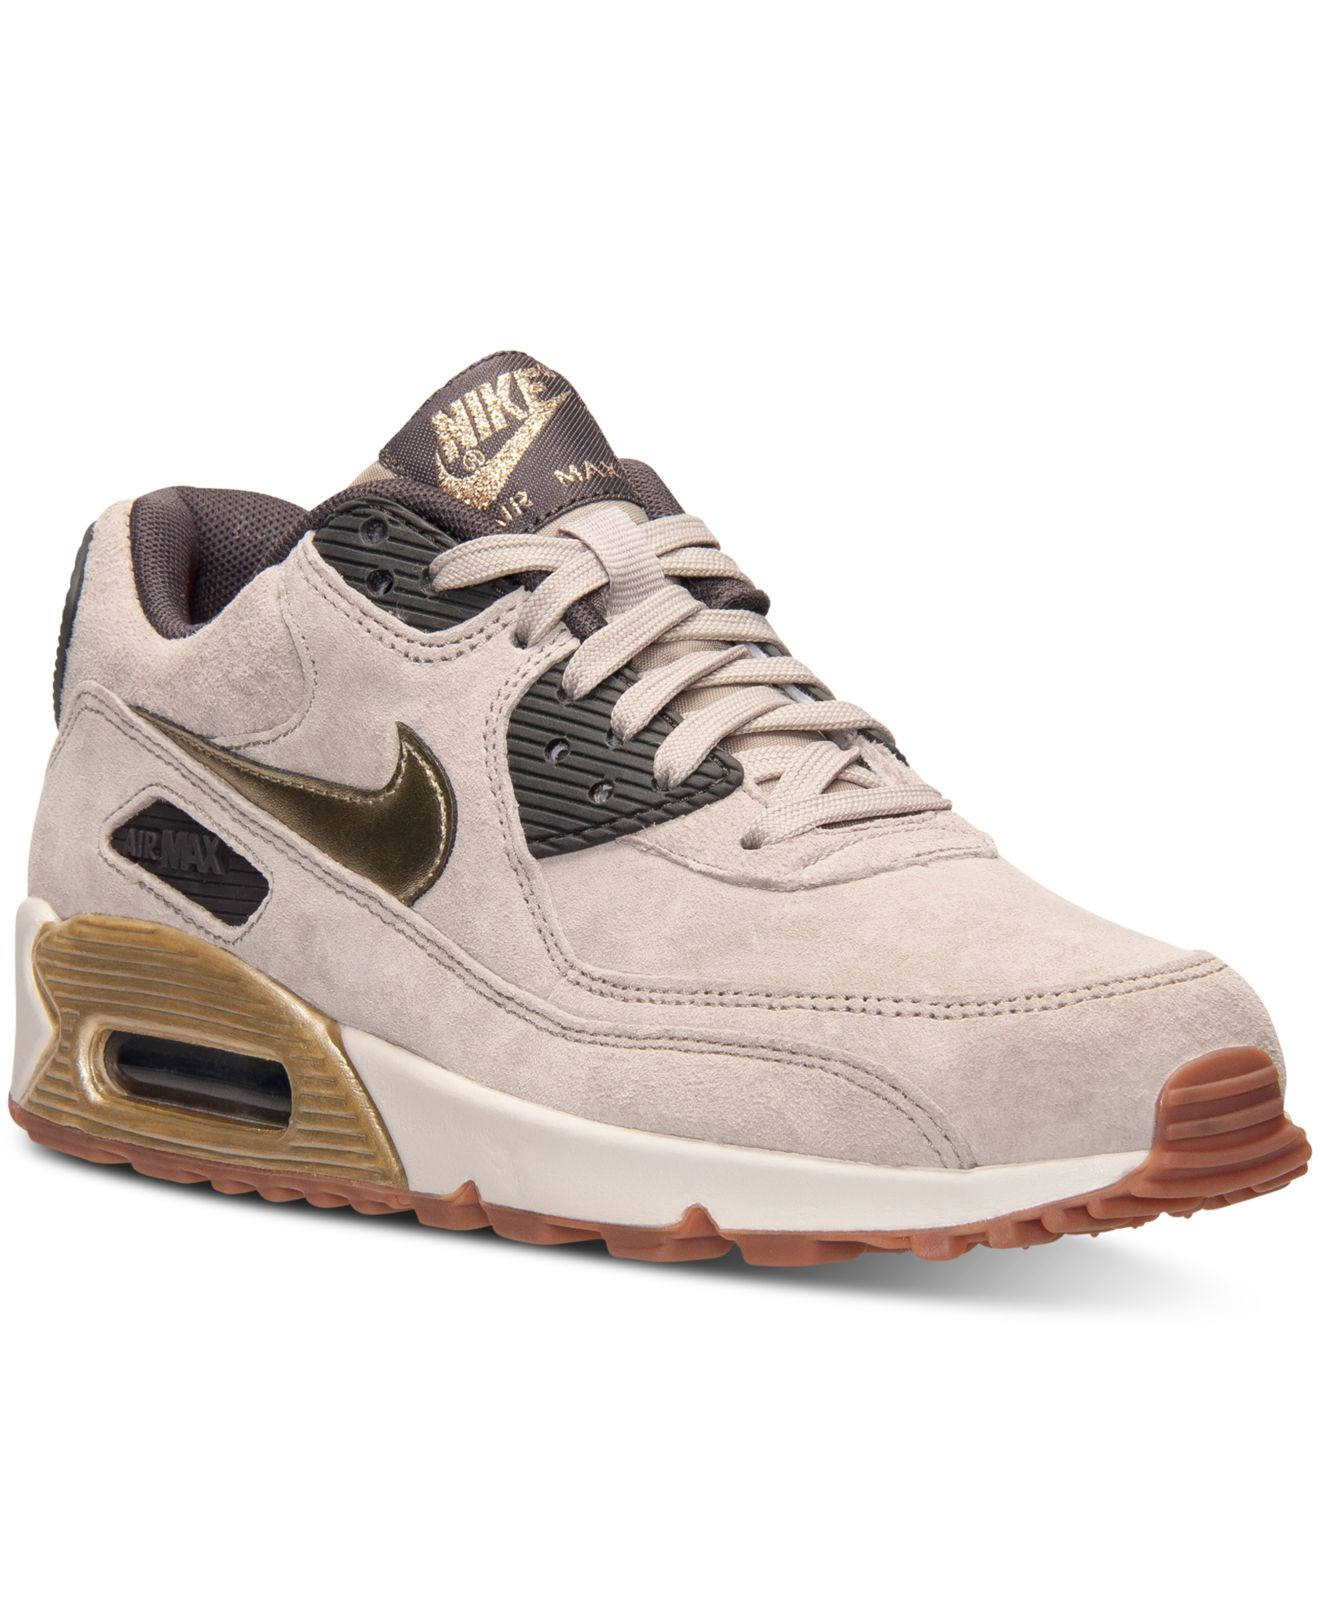 los angeles 03c73 c8d79 Gallery. Previously sold at  Macy s · Women s Nike Air Max 90